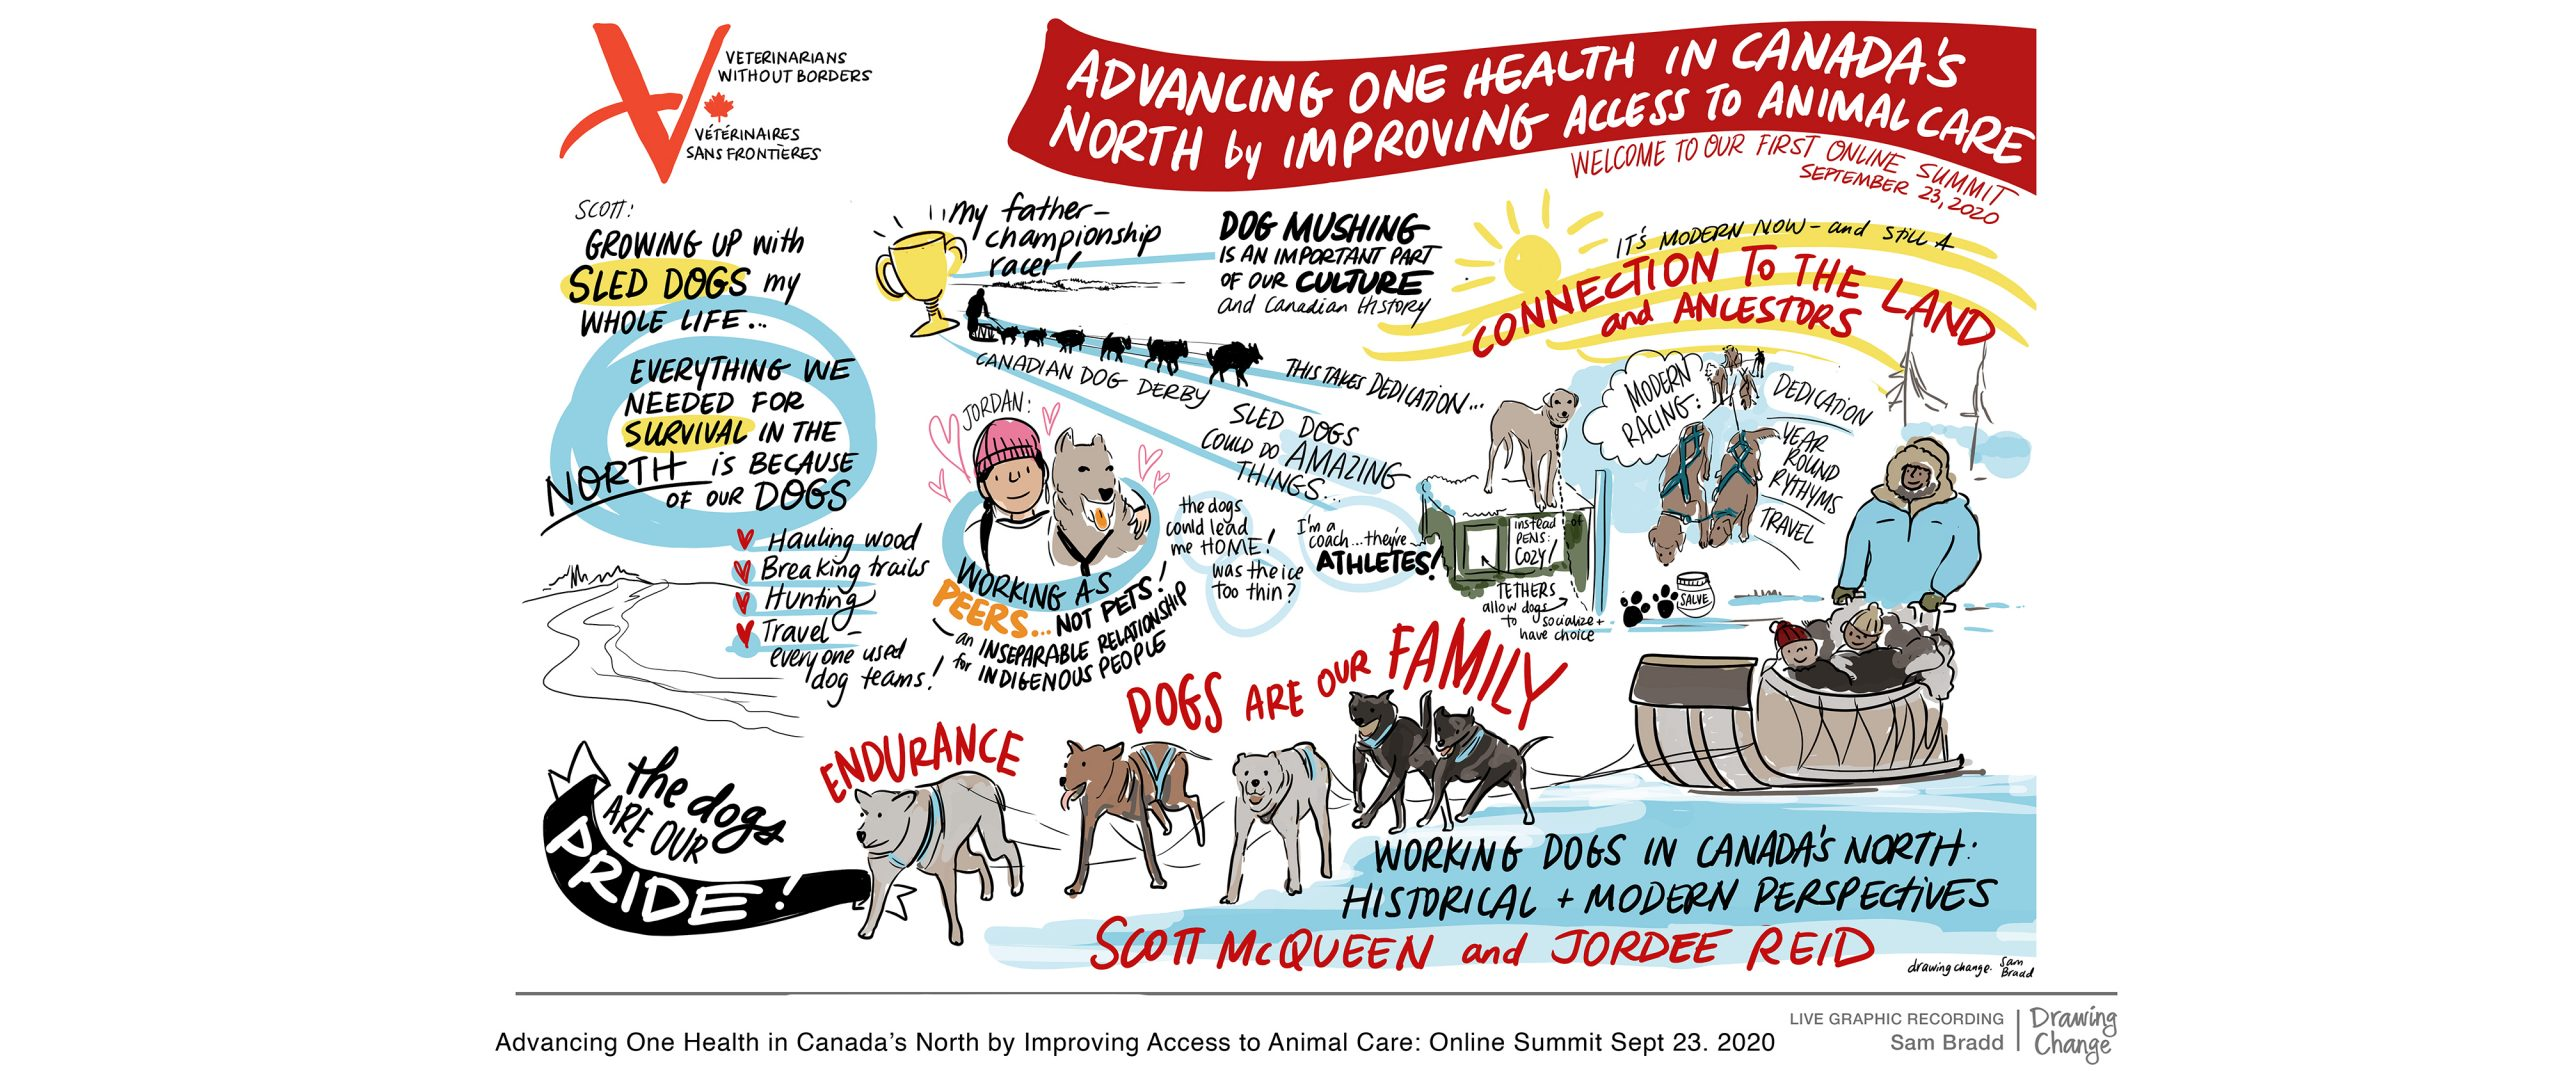 graphic recording of keynote by scott mcqueen and jordee reid Vets without borders